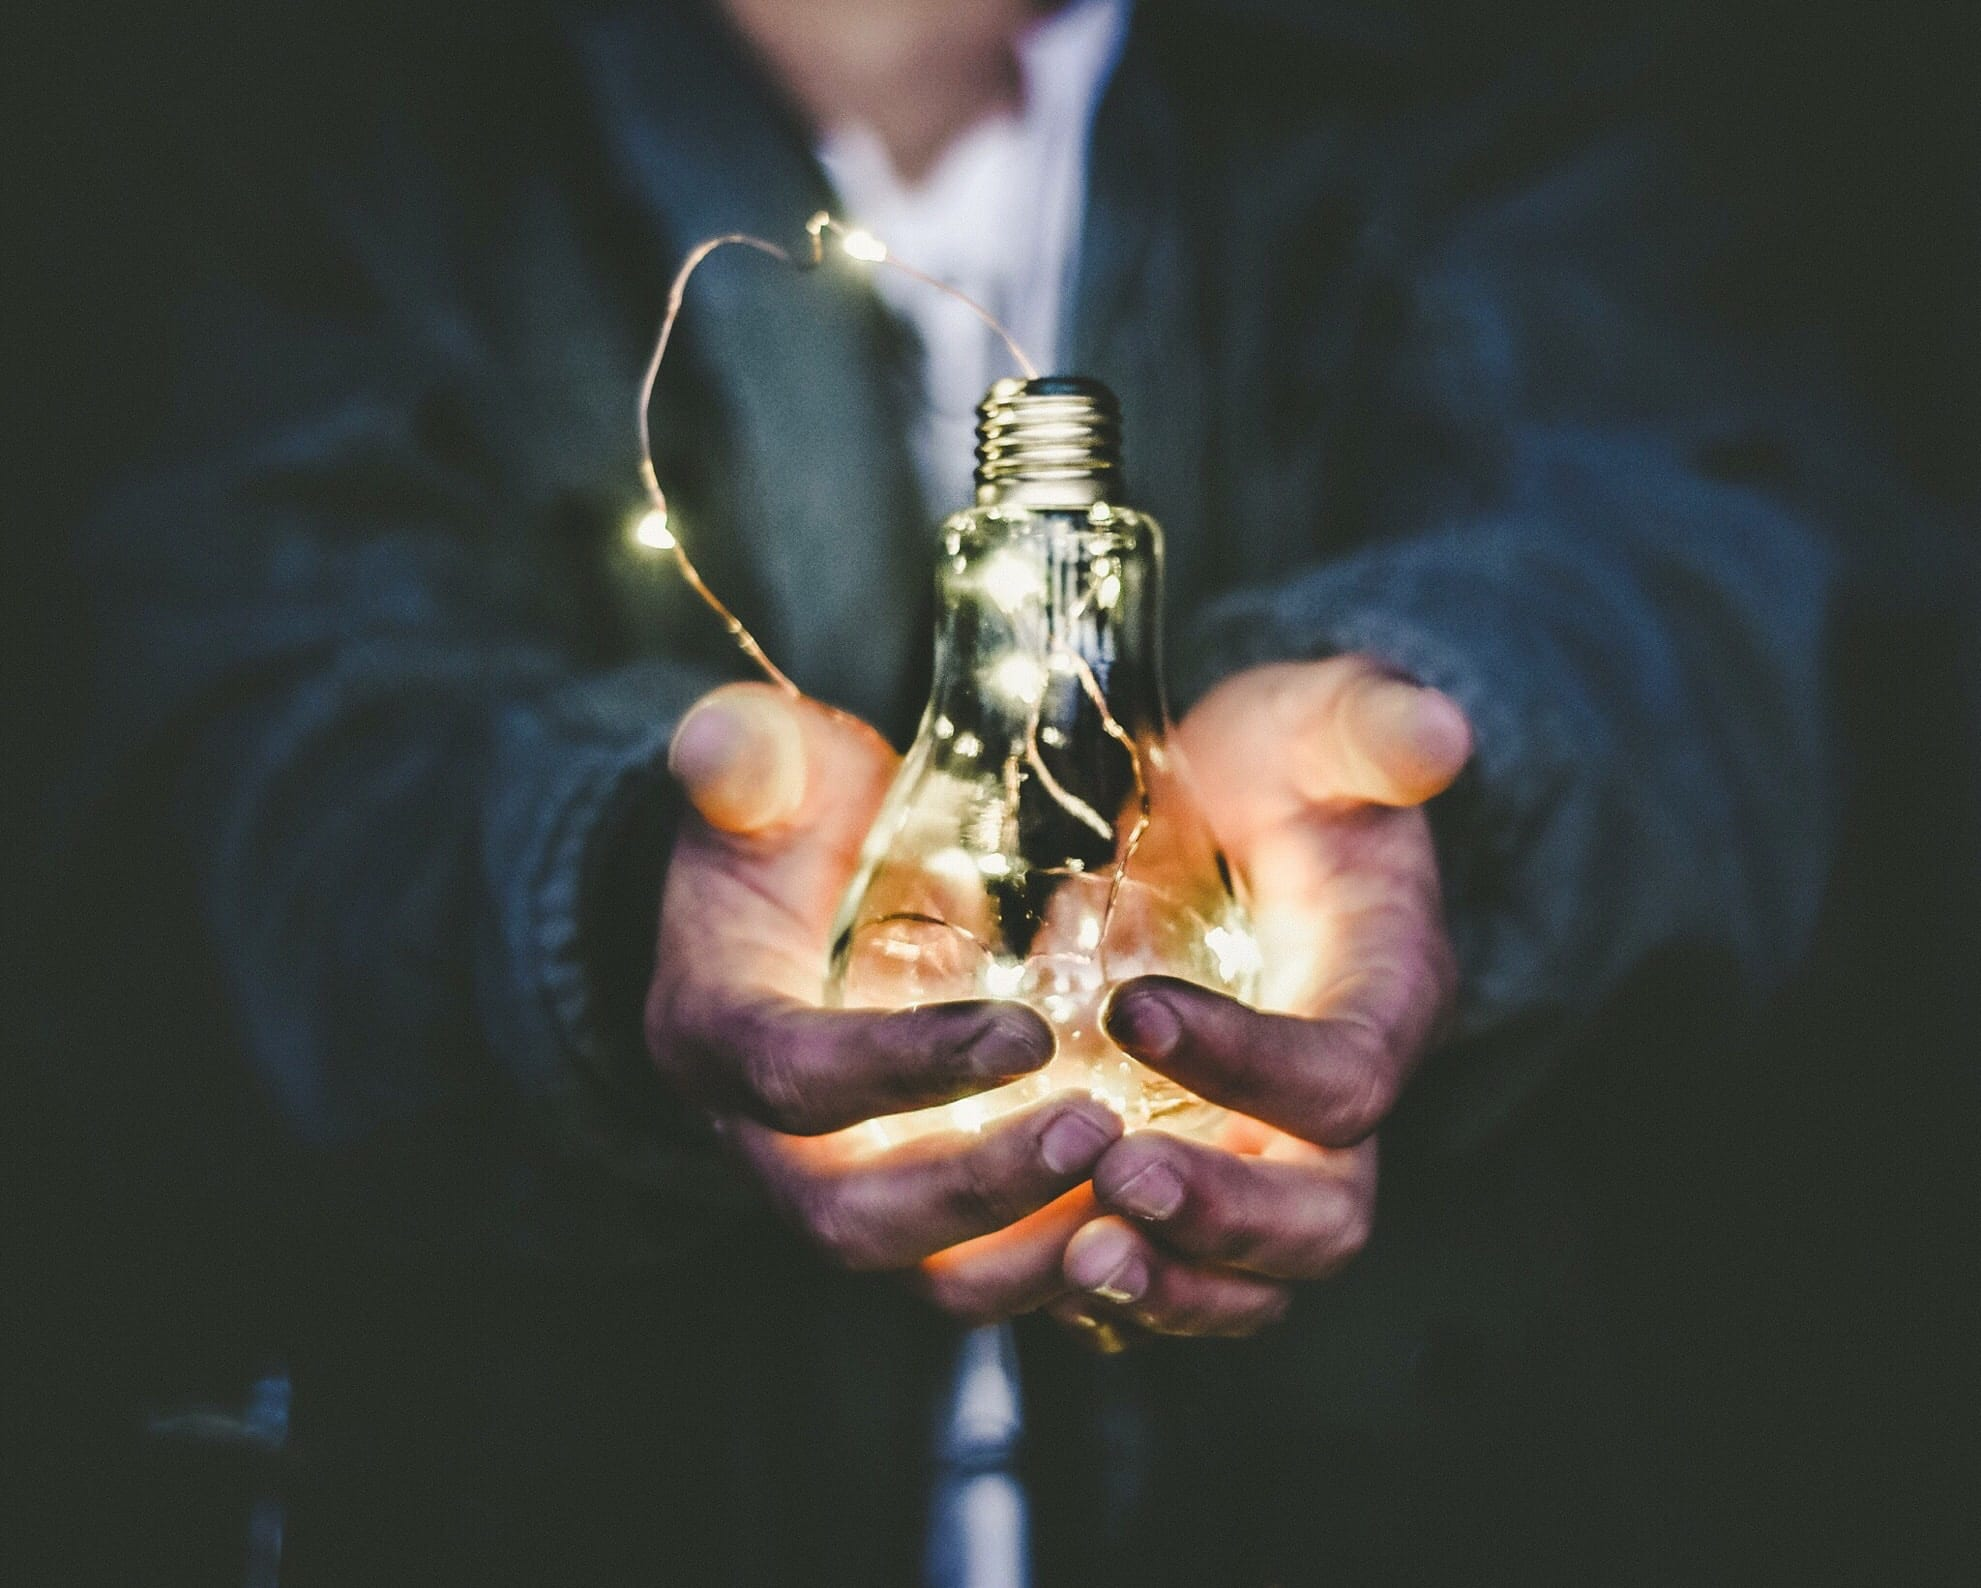 Man holding lit light bulb in outstretched hands; image by Riccardo Annandale, via Unsplash.com.